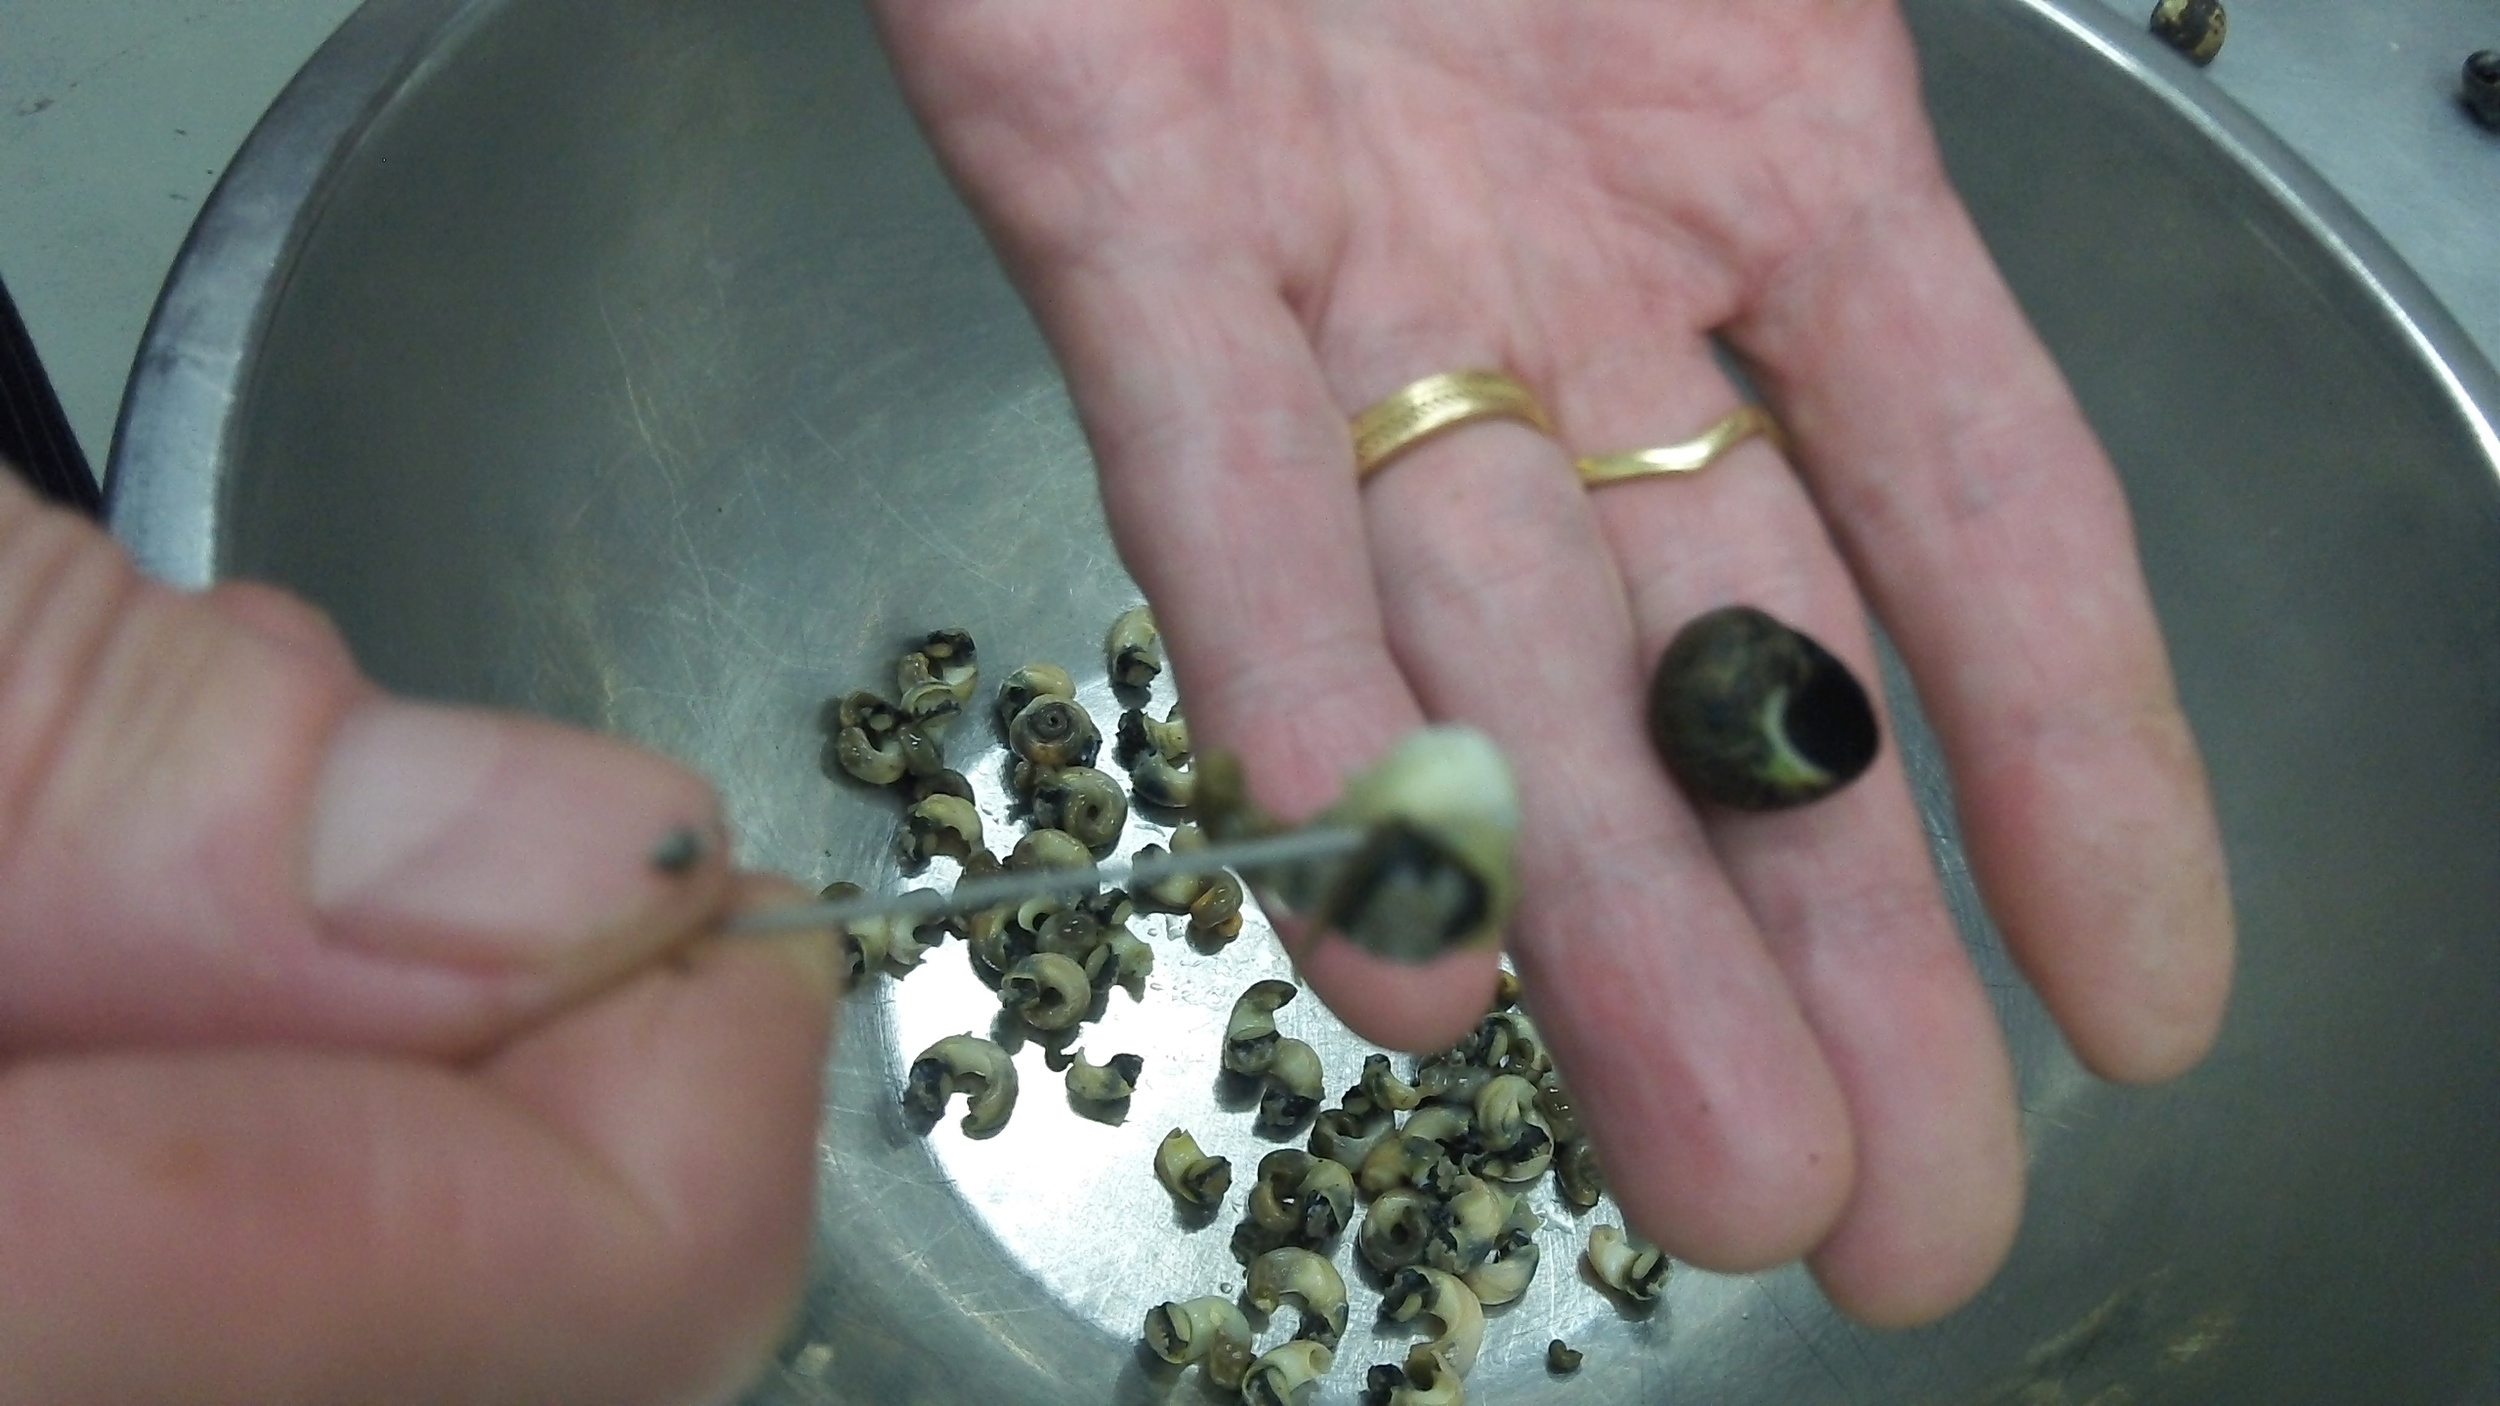 Removing periwinkles from their shells